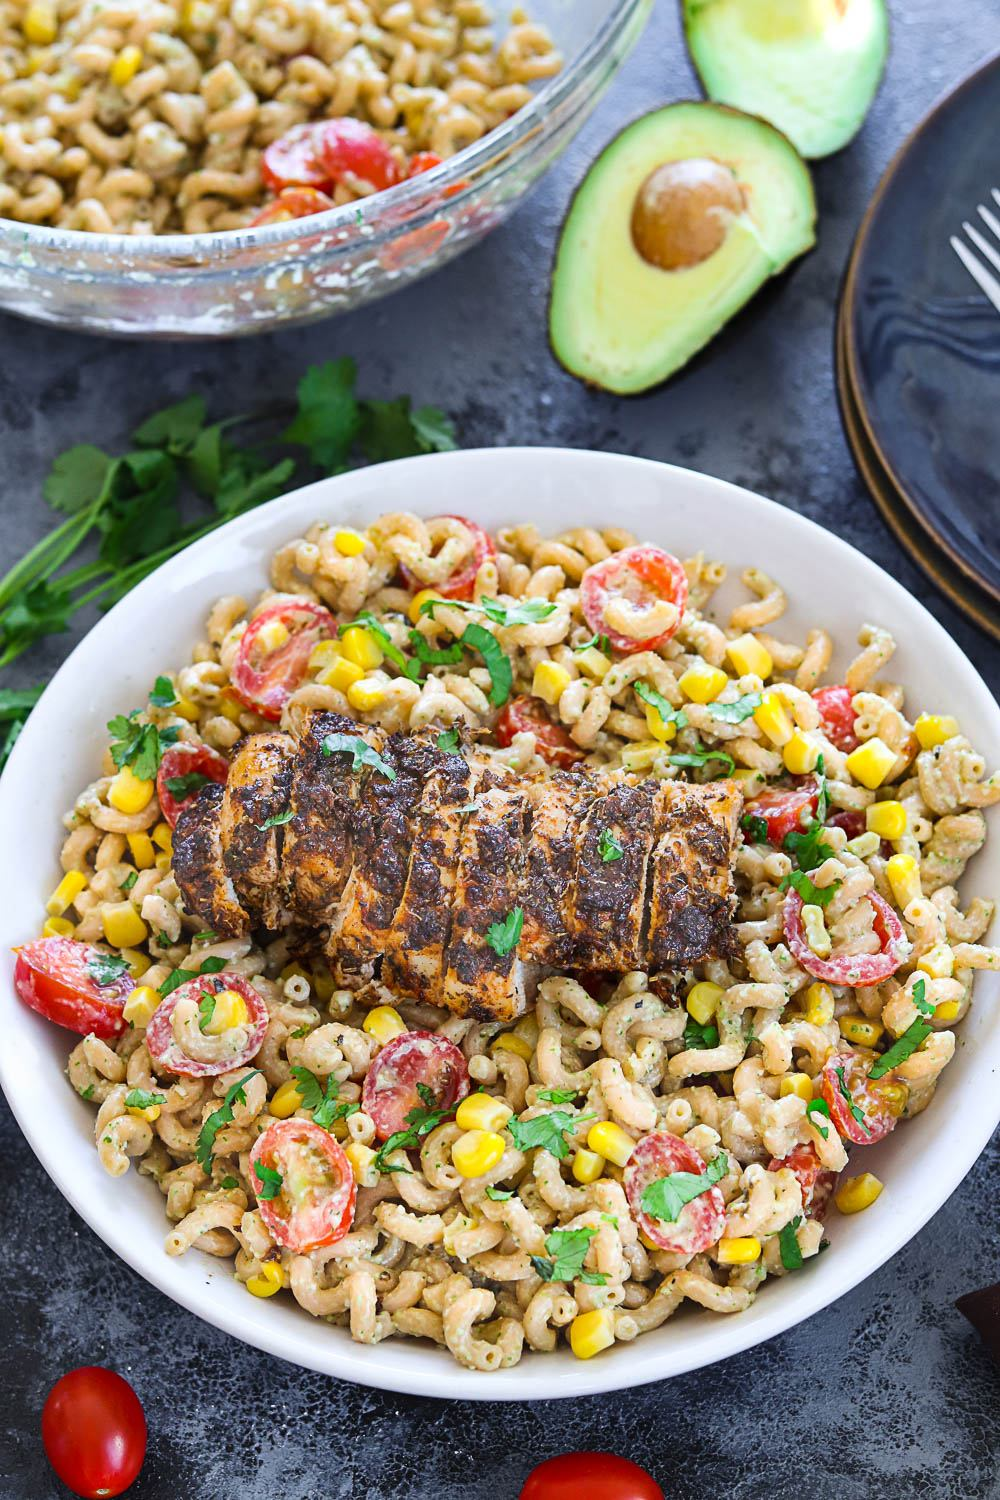 Cajun Chicken With Creamy Avocado Pasta - Ruchiskitchen